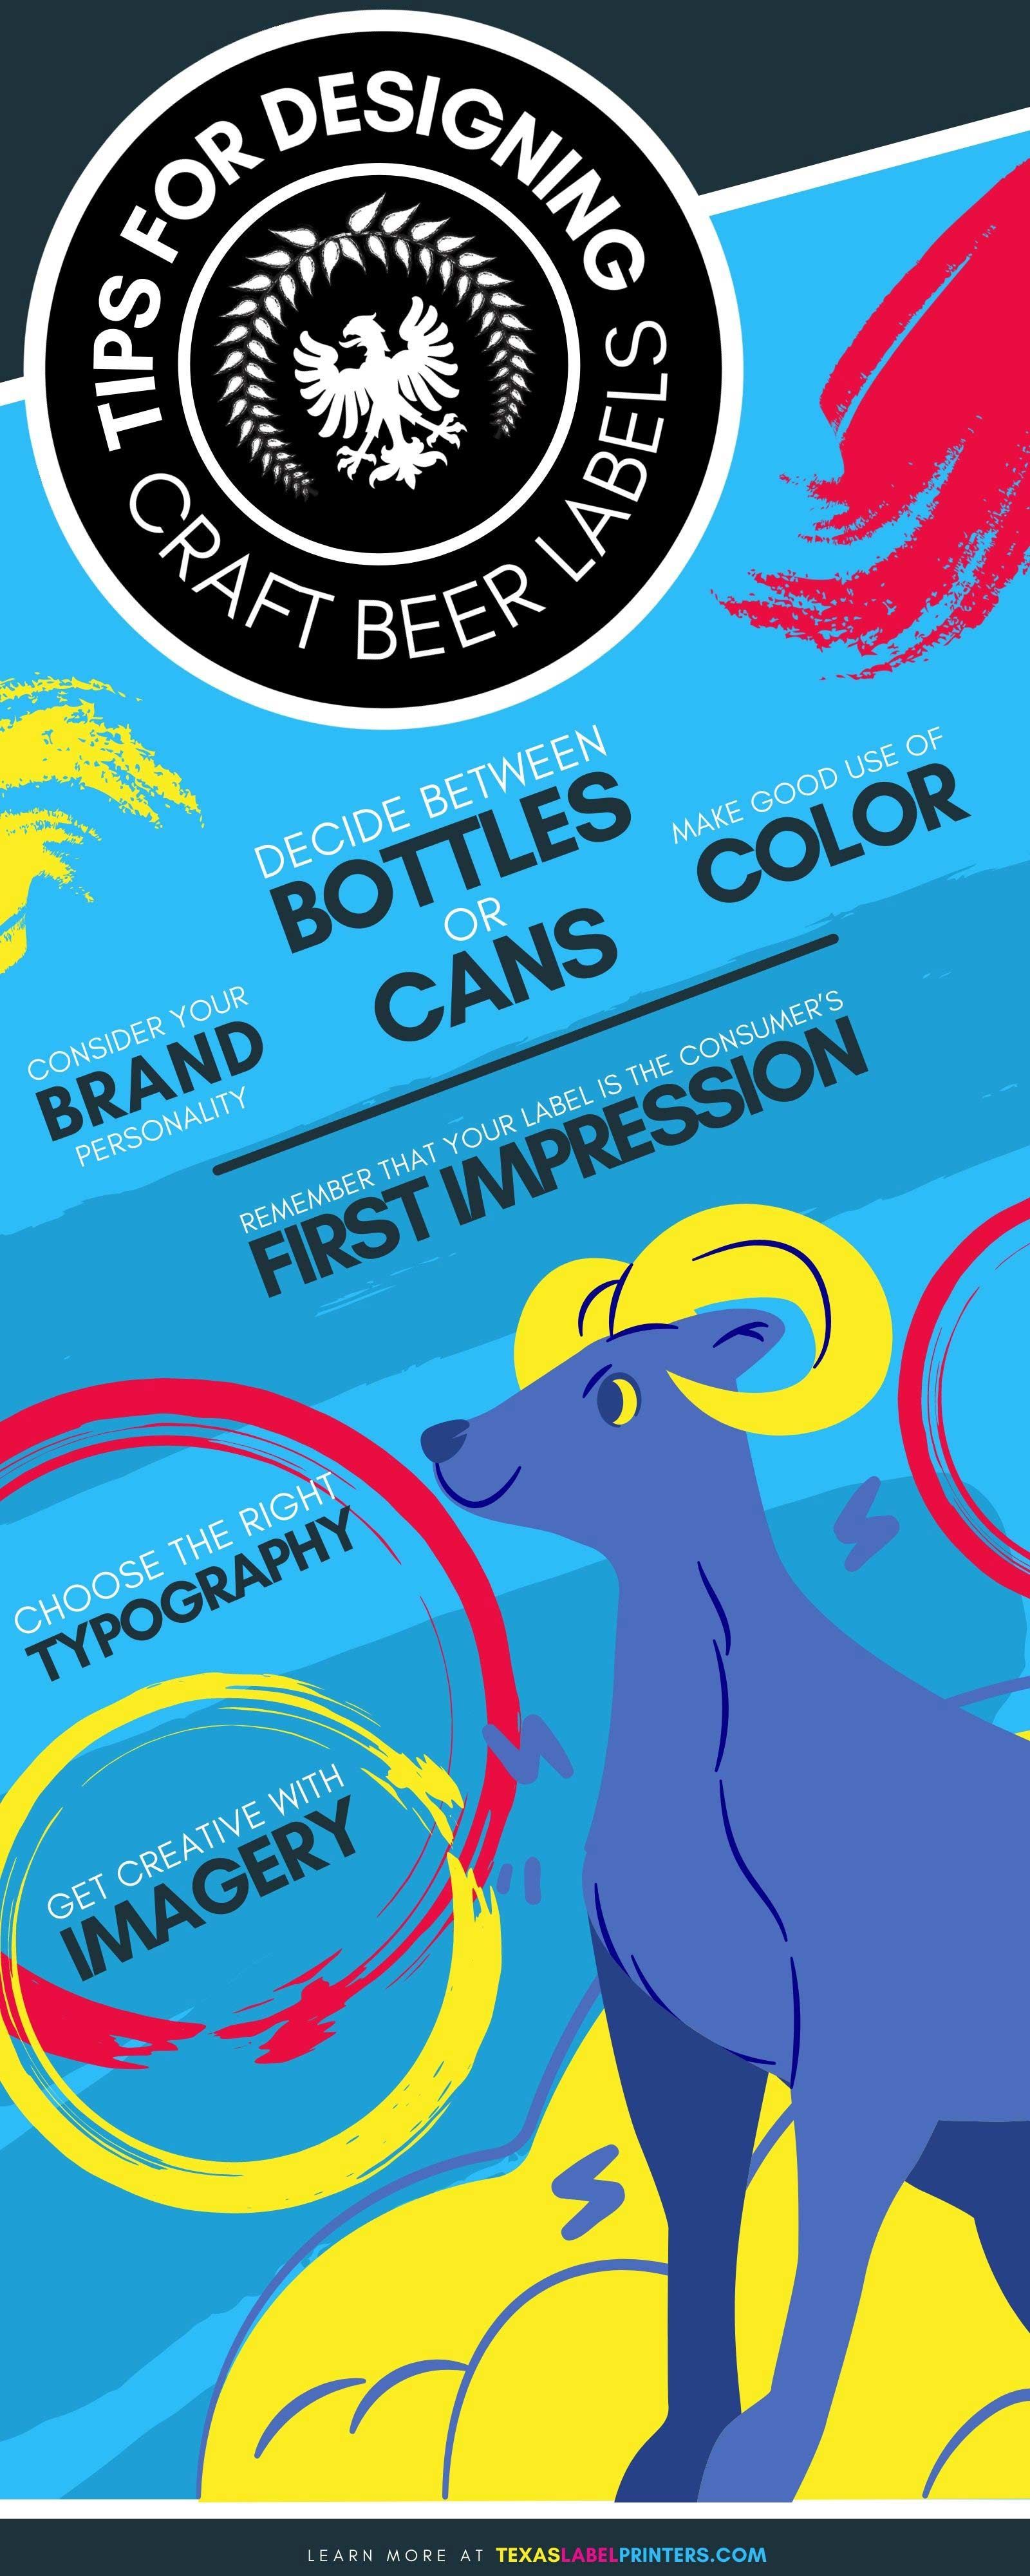 Tips for Designing Craft Beer Labels Infographic